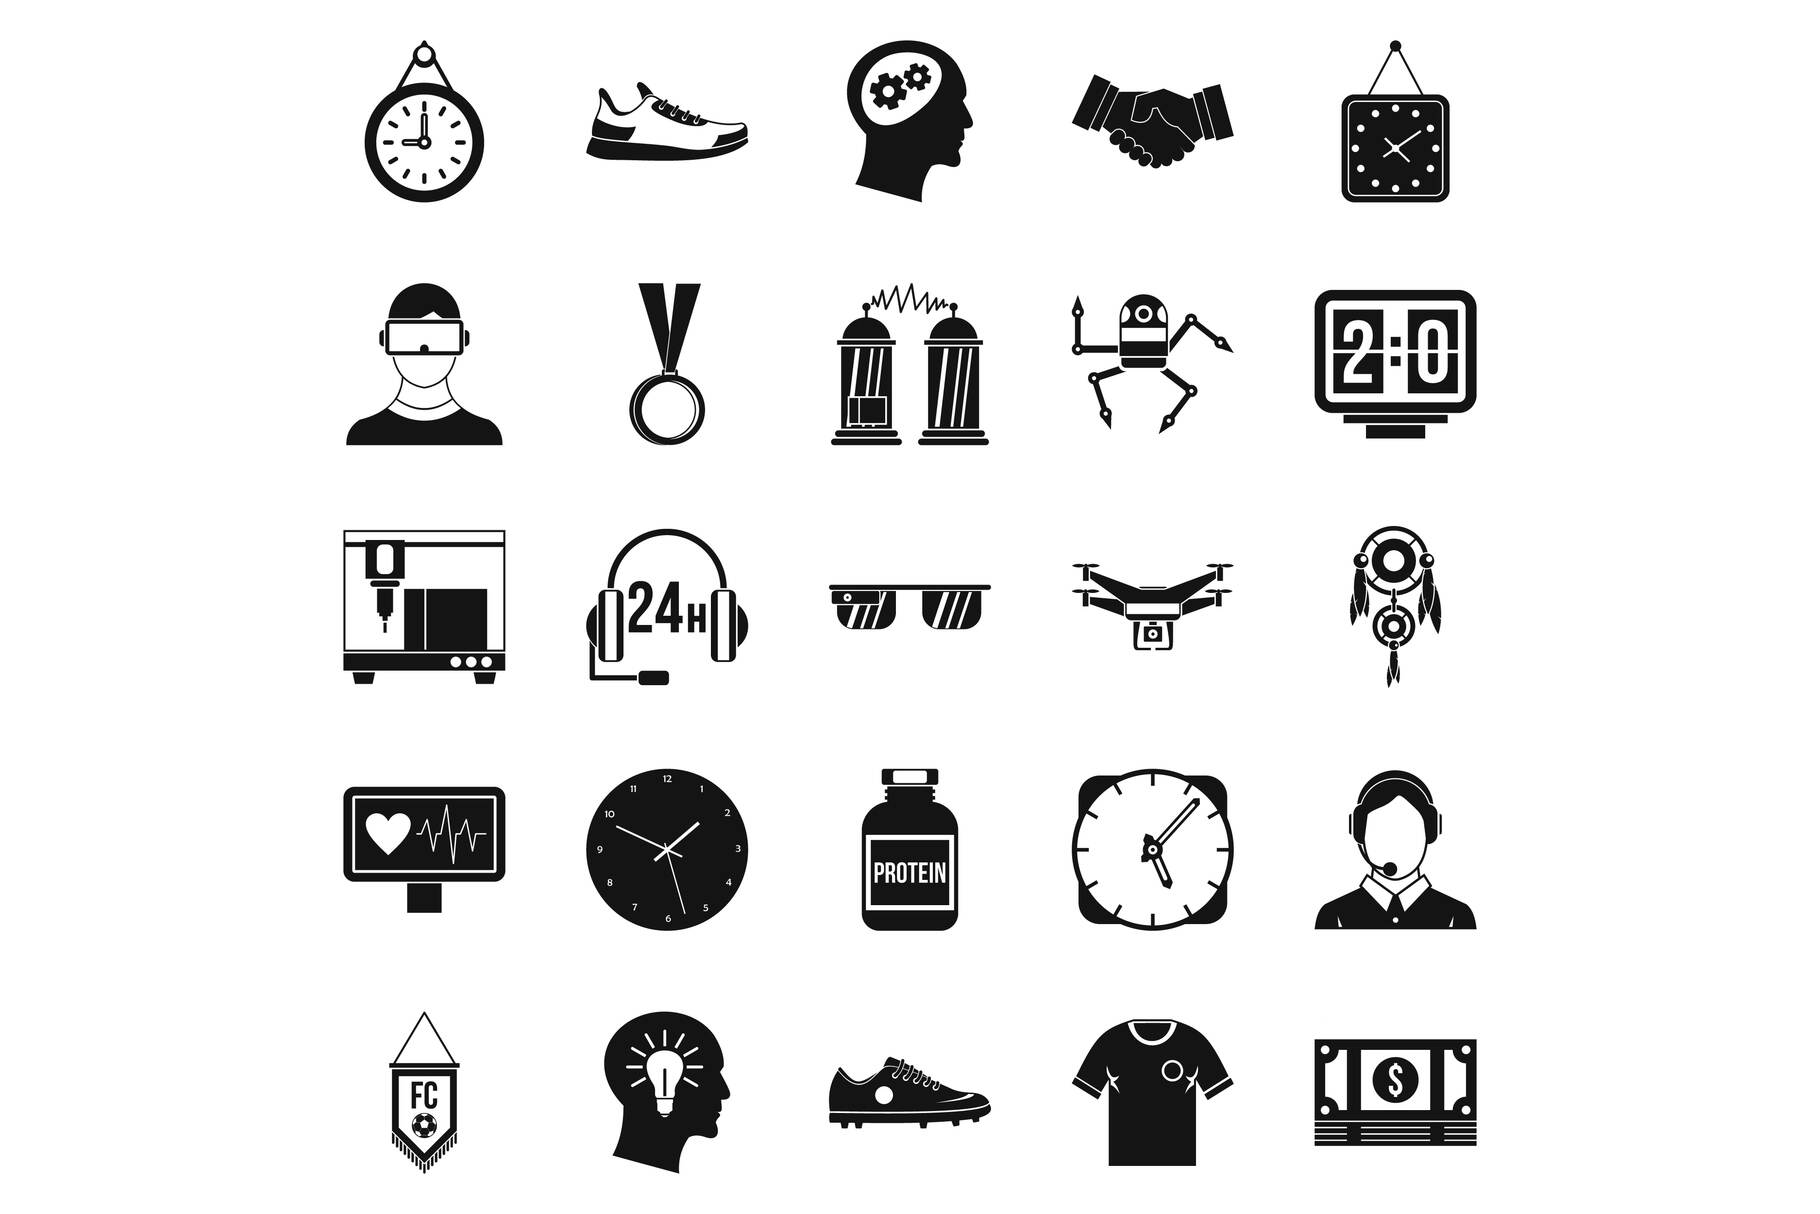 Ticker icons set, simple style example image 1